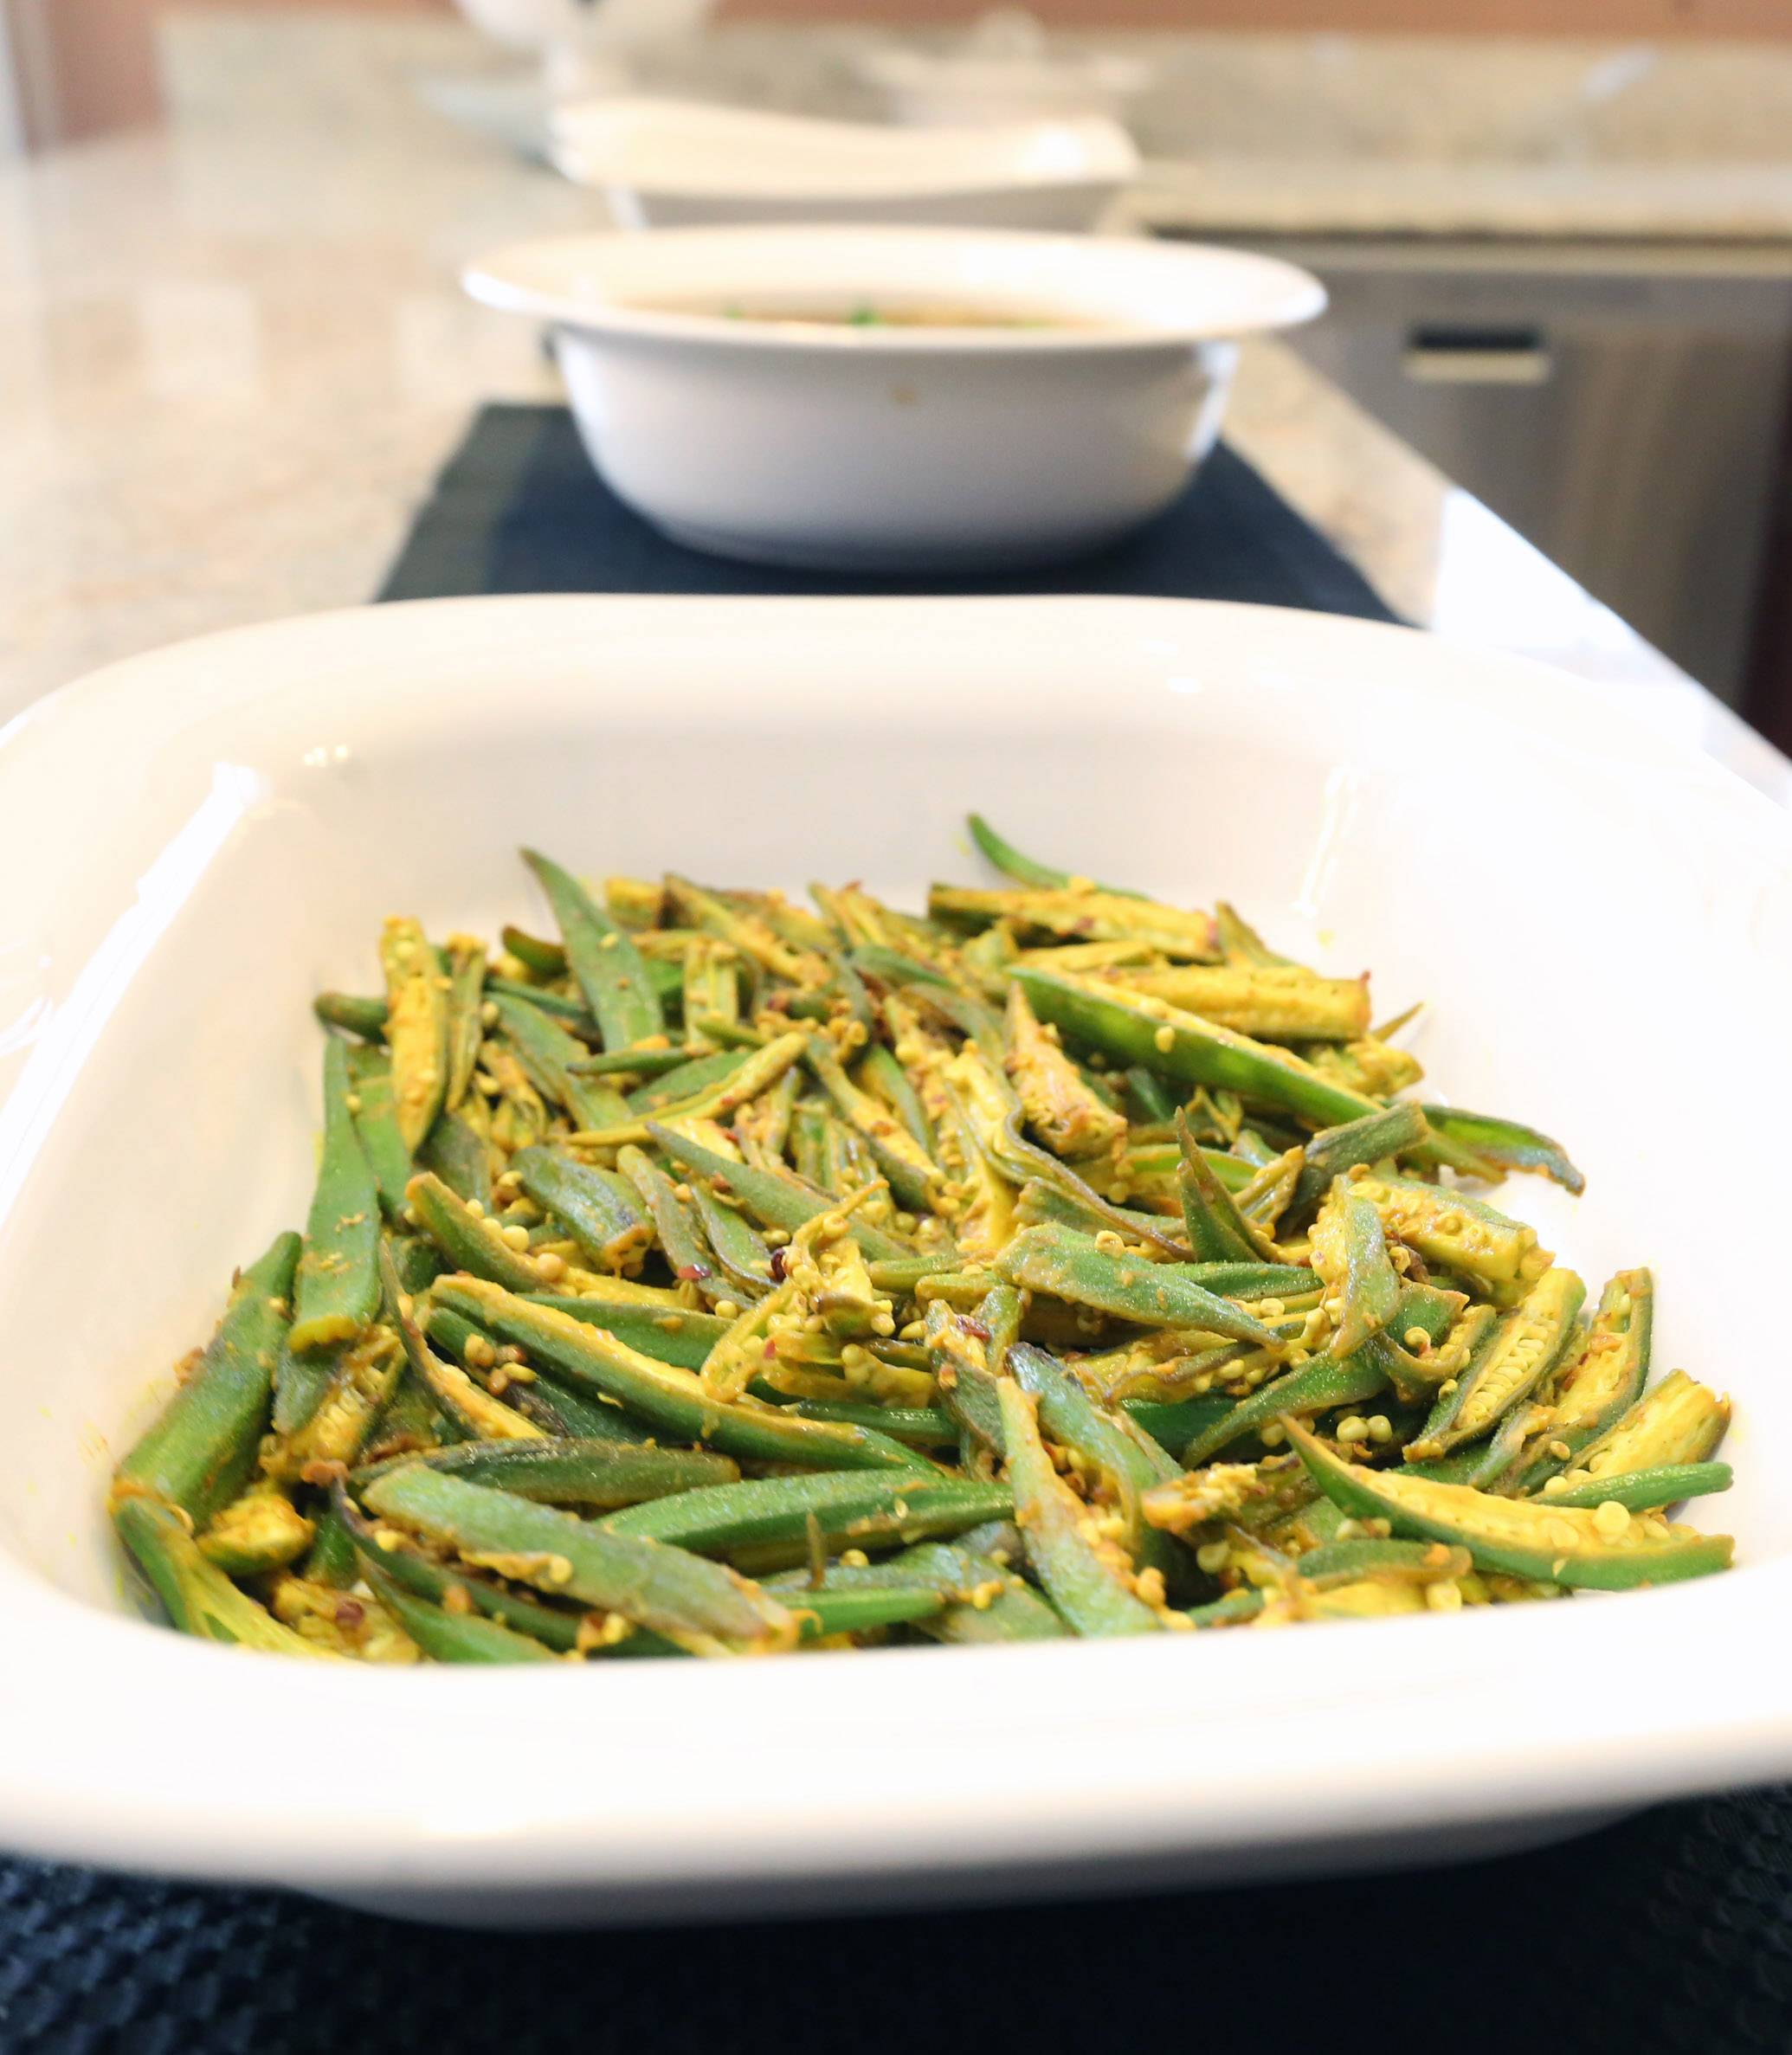 Cook of the Week Sushma Bhanot adds lemon juice to cooked okra to keep the vegetable's signature sliminess in check.